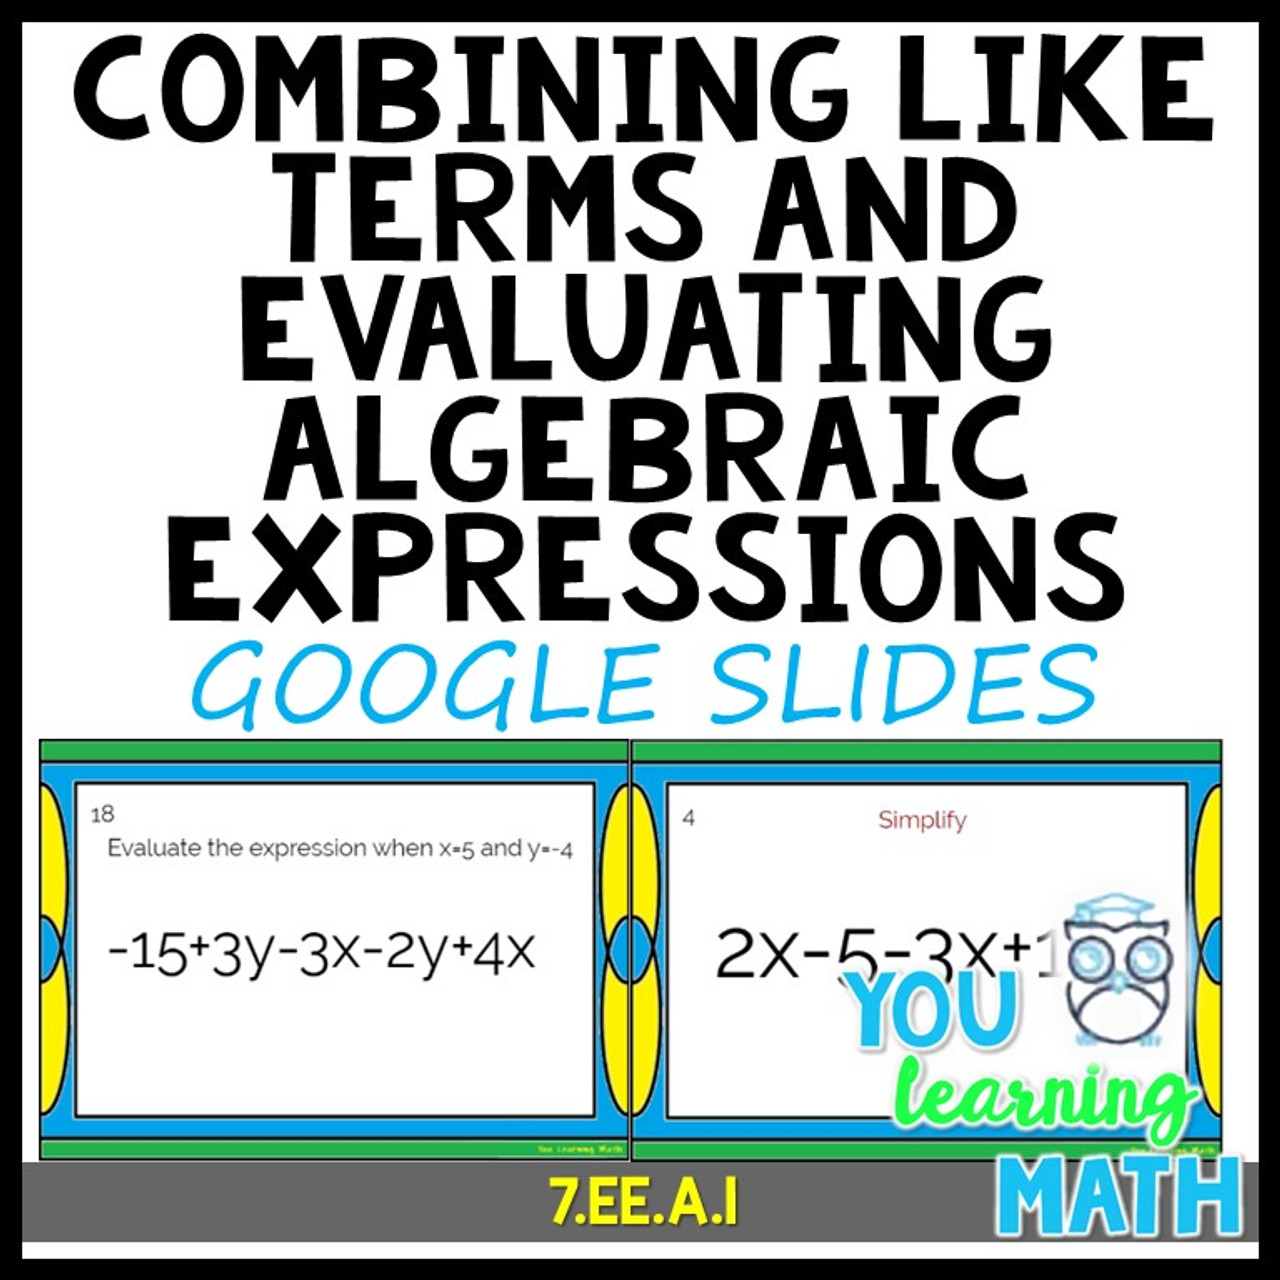 Combining Like Terms And Evaluating Algebraic Expressions Google Slides Amped Up Learning